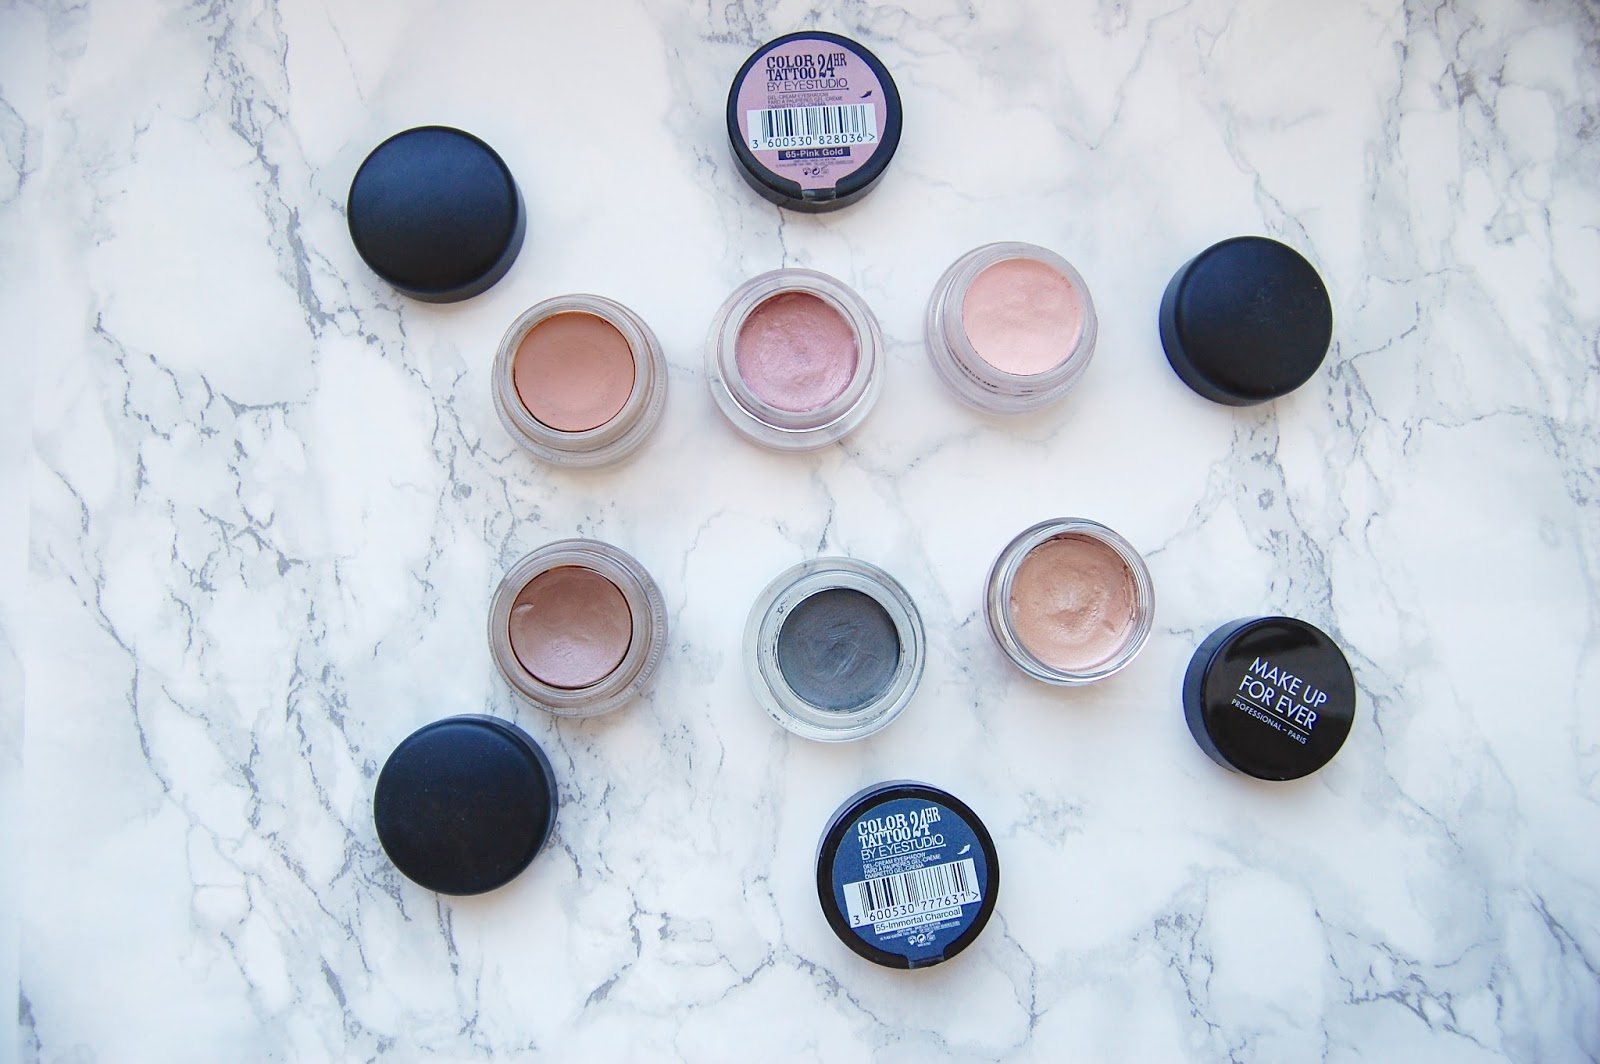 Read my cream eyeshadows review here